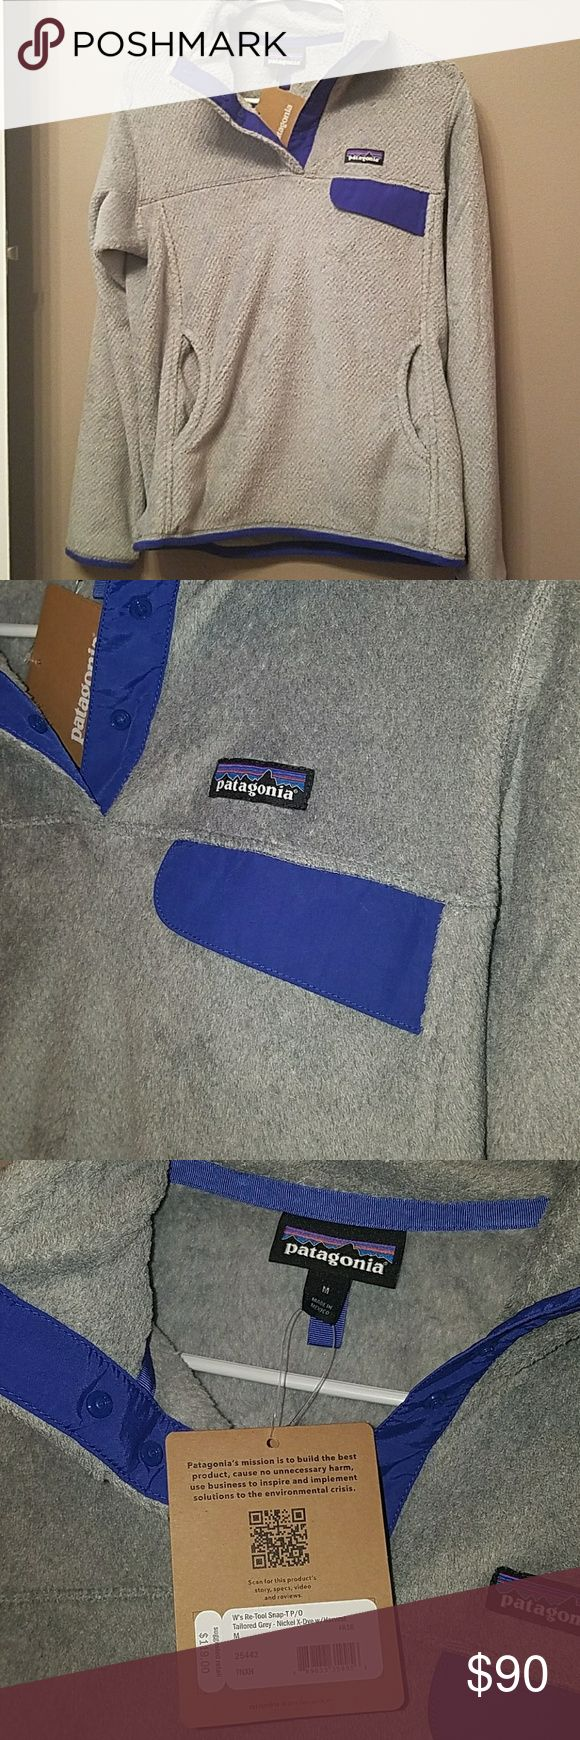 Patagonia snap pullover medium Brand new with tags.  Very soft & comfy ! *FIRM on price. Patagonia Tops Sweatshirts & Hoodies